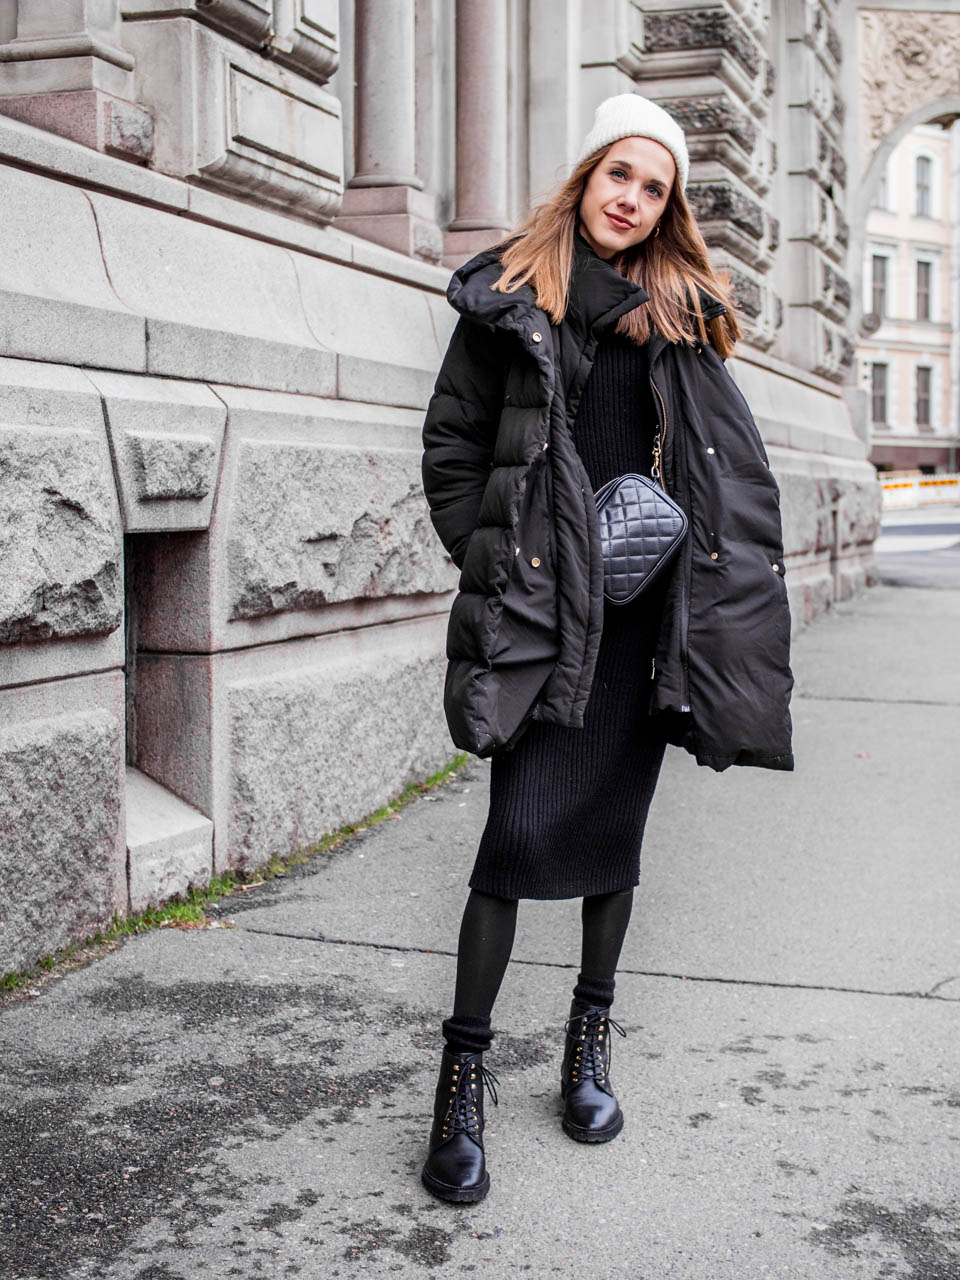 All black fashion blogger winter outfit - Kokomusta talviasu, muotiblogi, Helsinki